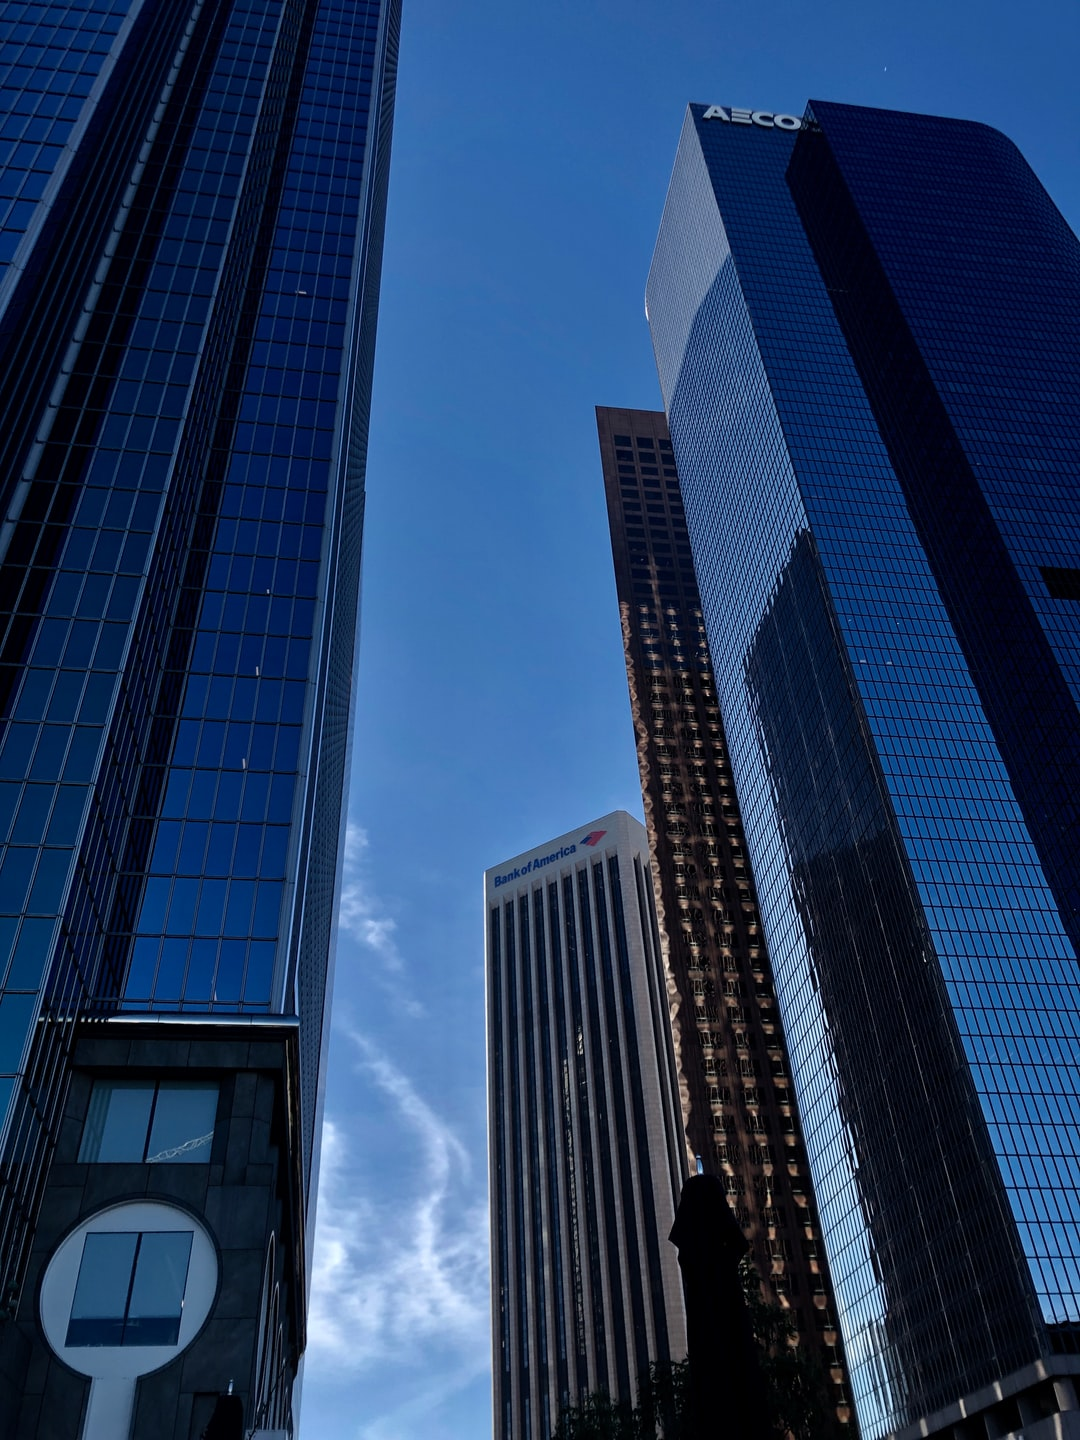 One of my absolute favorite photos of downtown Los Angeles.  Just understanding the capture of those buildings, along with the perfect day, made this picture come together.  It was one of the perfect shots that came about.